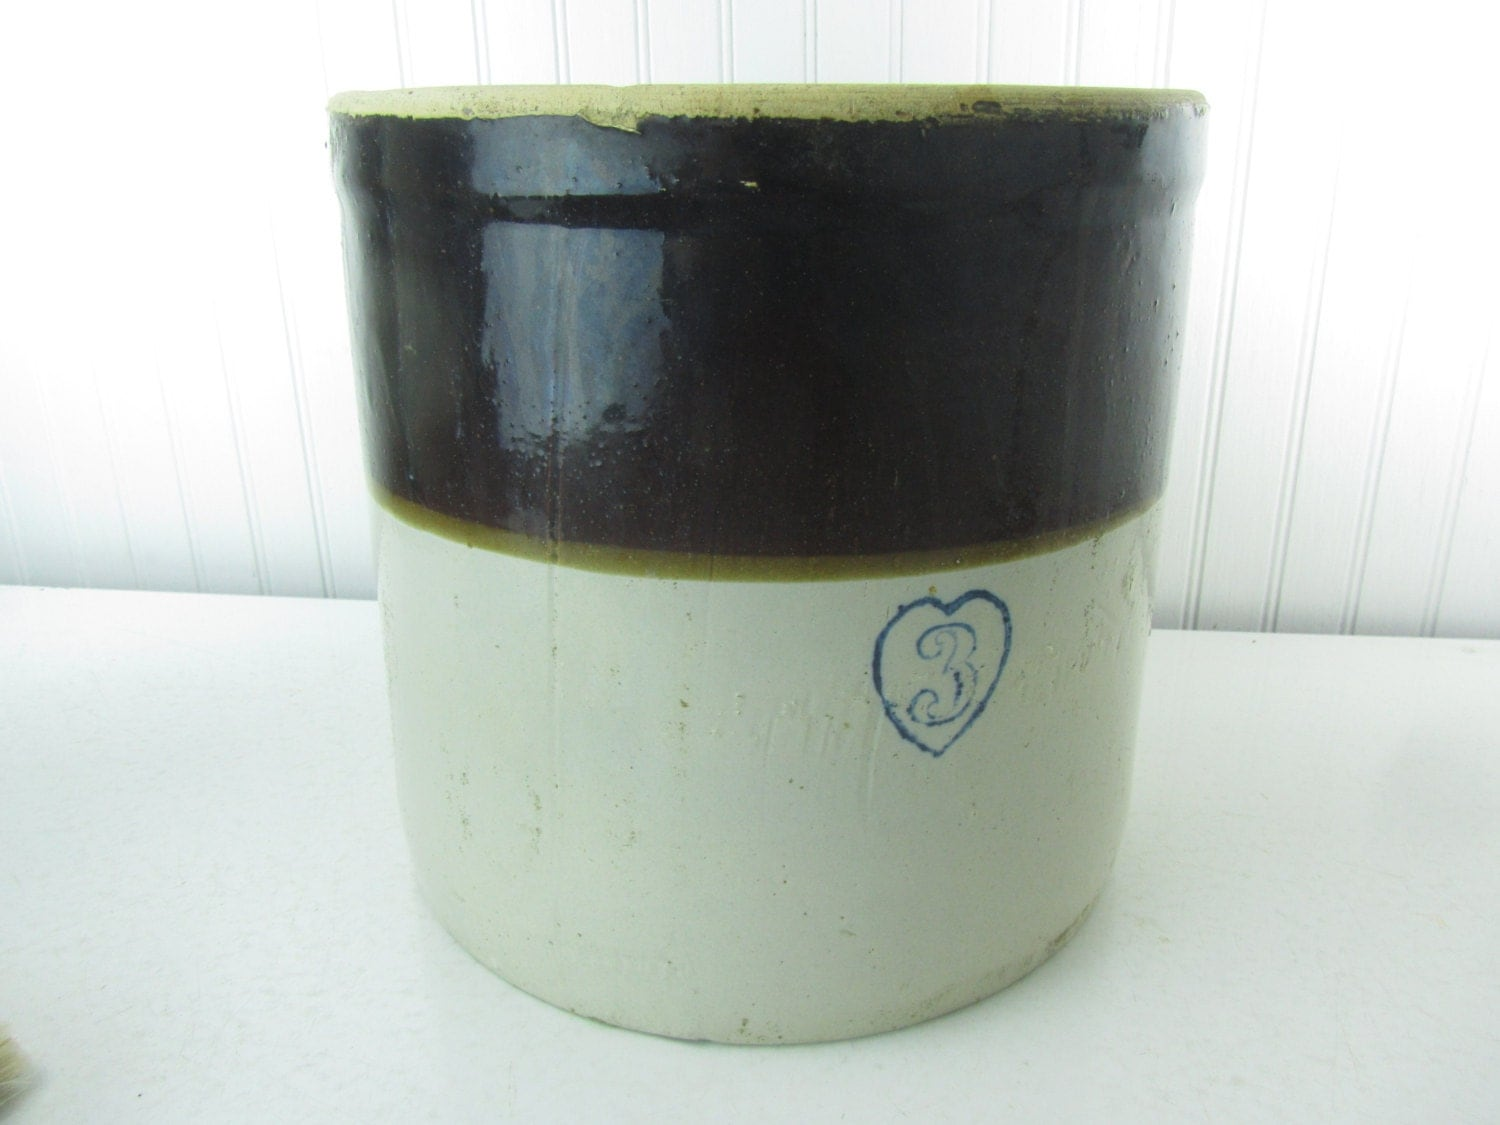 Antique Crock Blue Heart Logo Pottery Crock Three Gallon